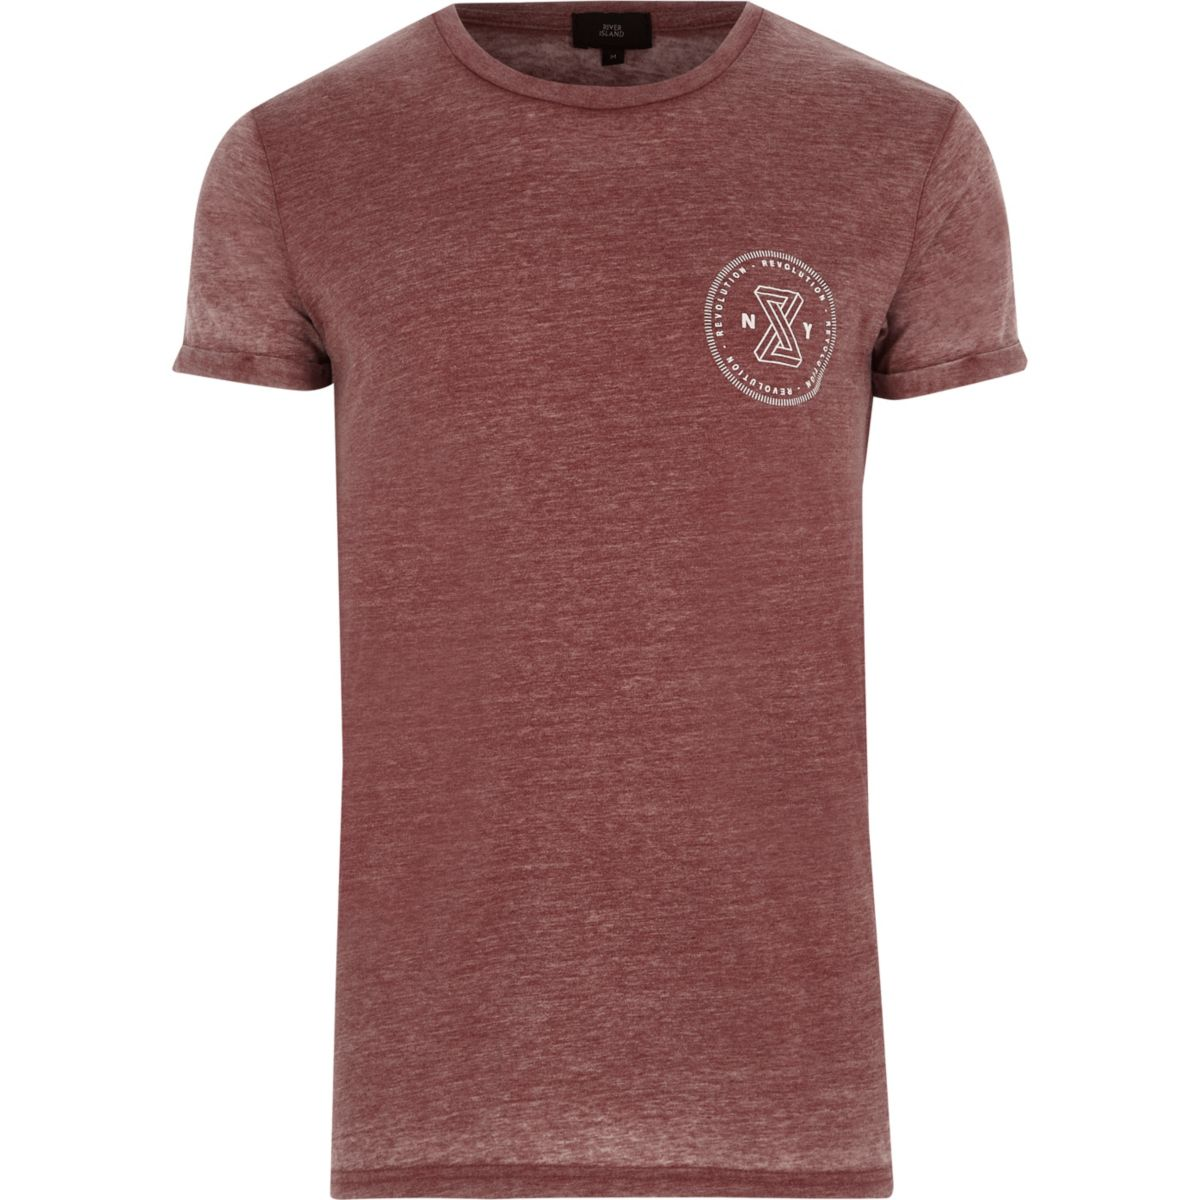 Dark red burnout 'revolution' print T-shirt